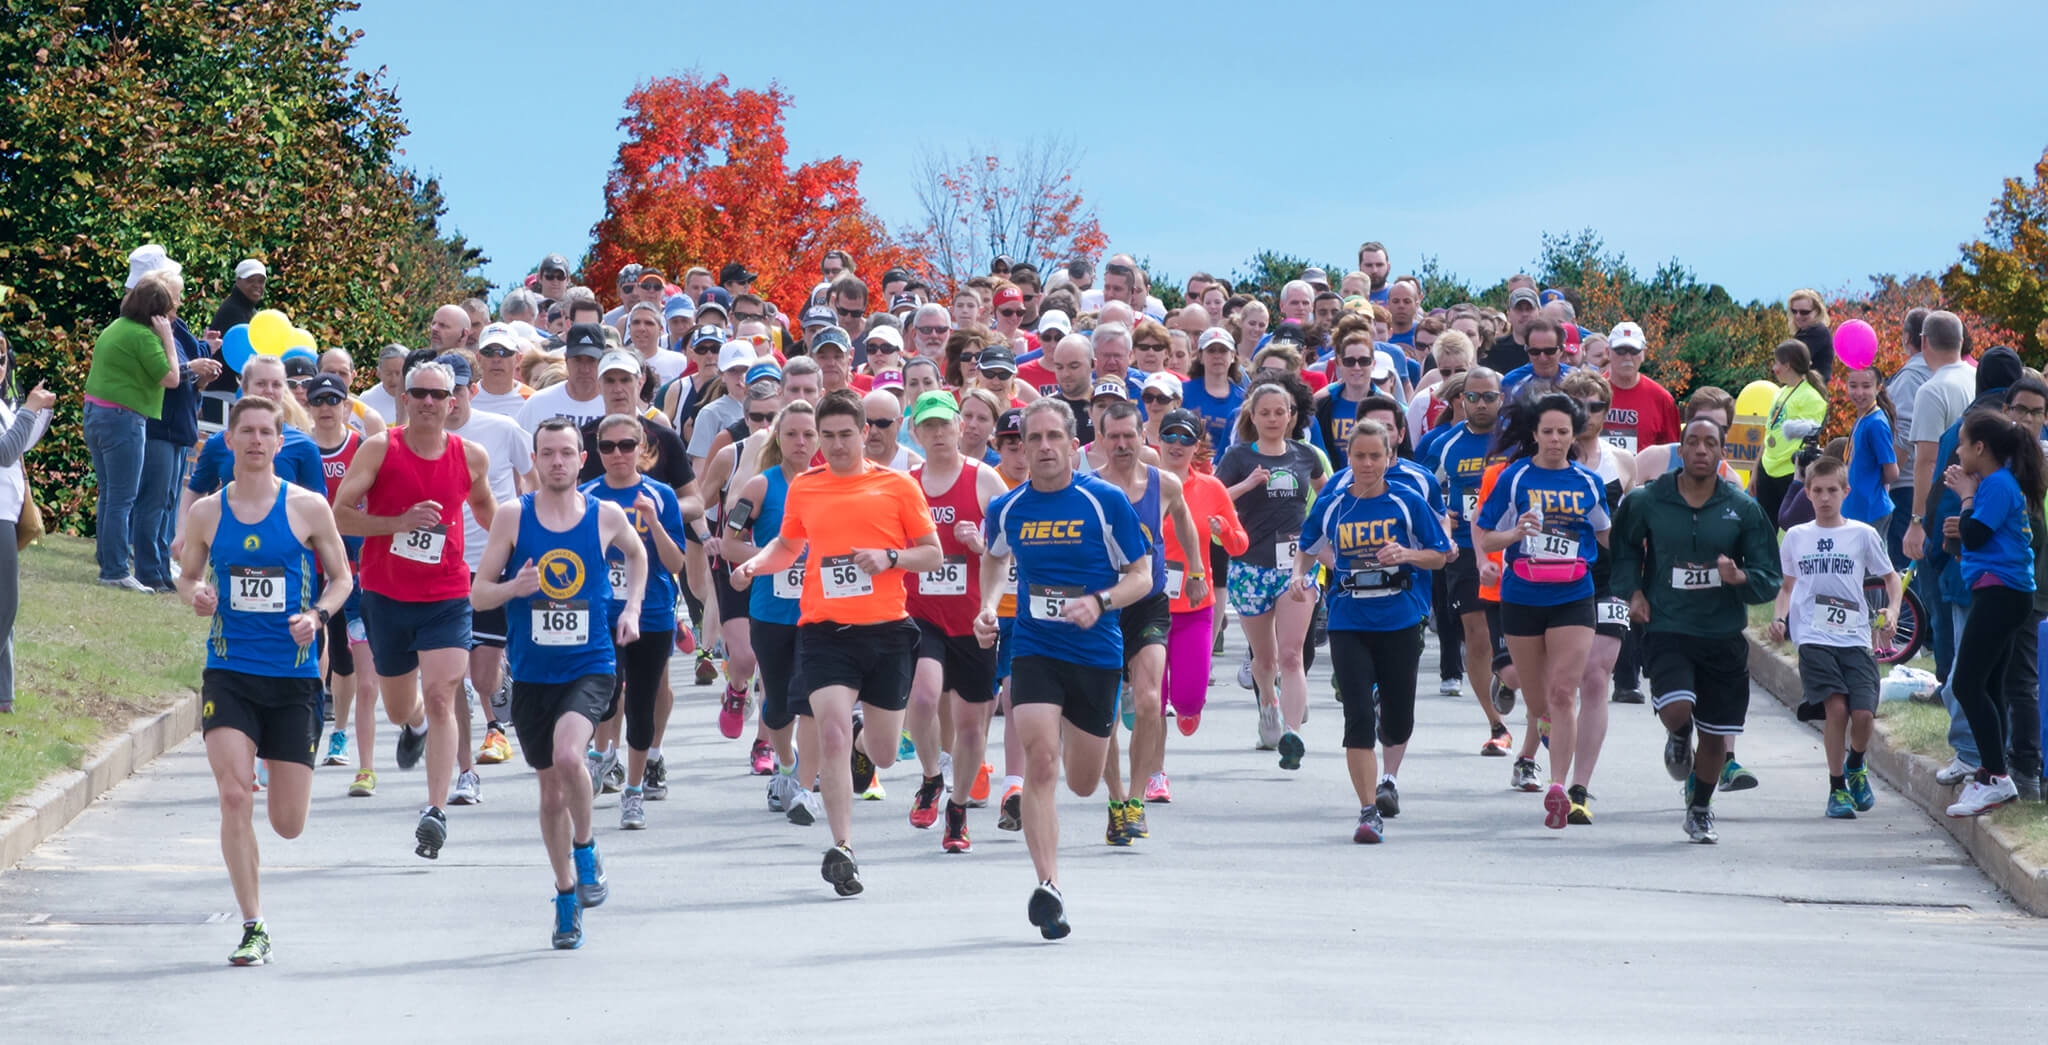 A pack of runners in the Campus Classic